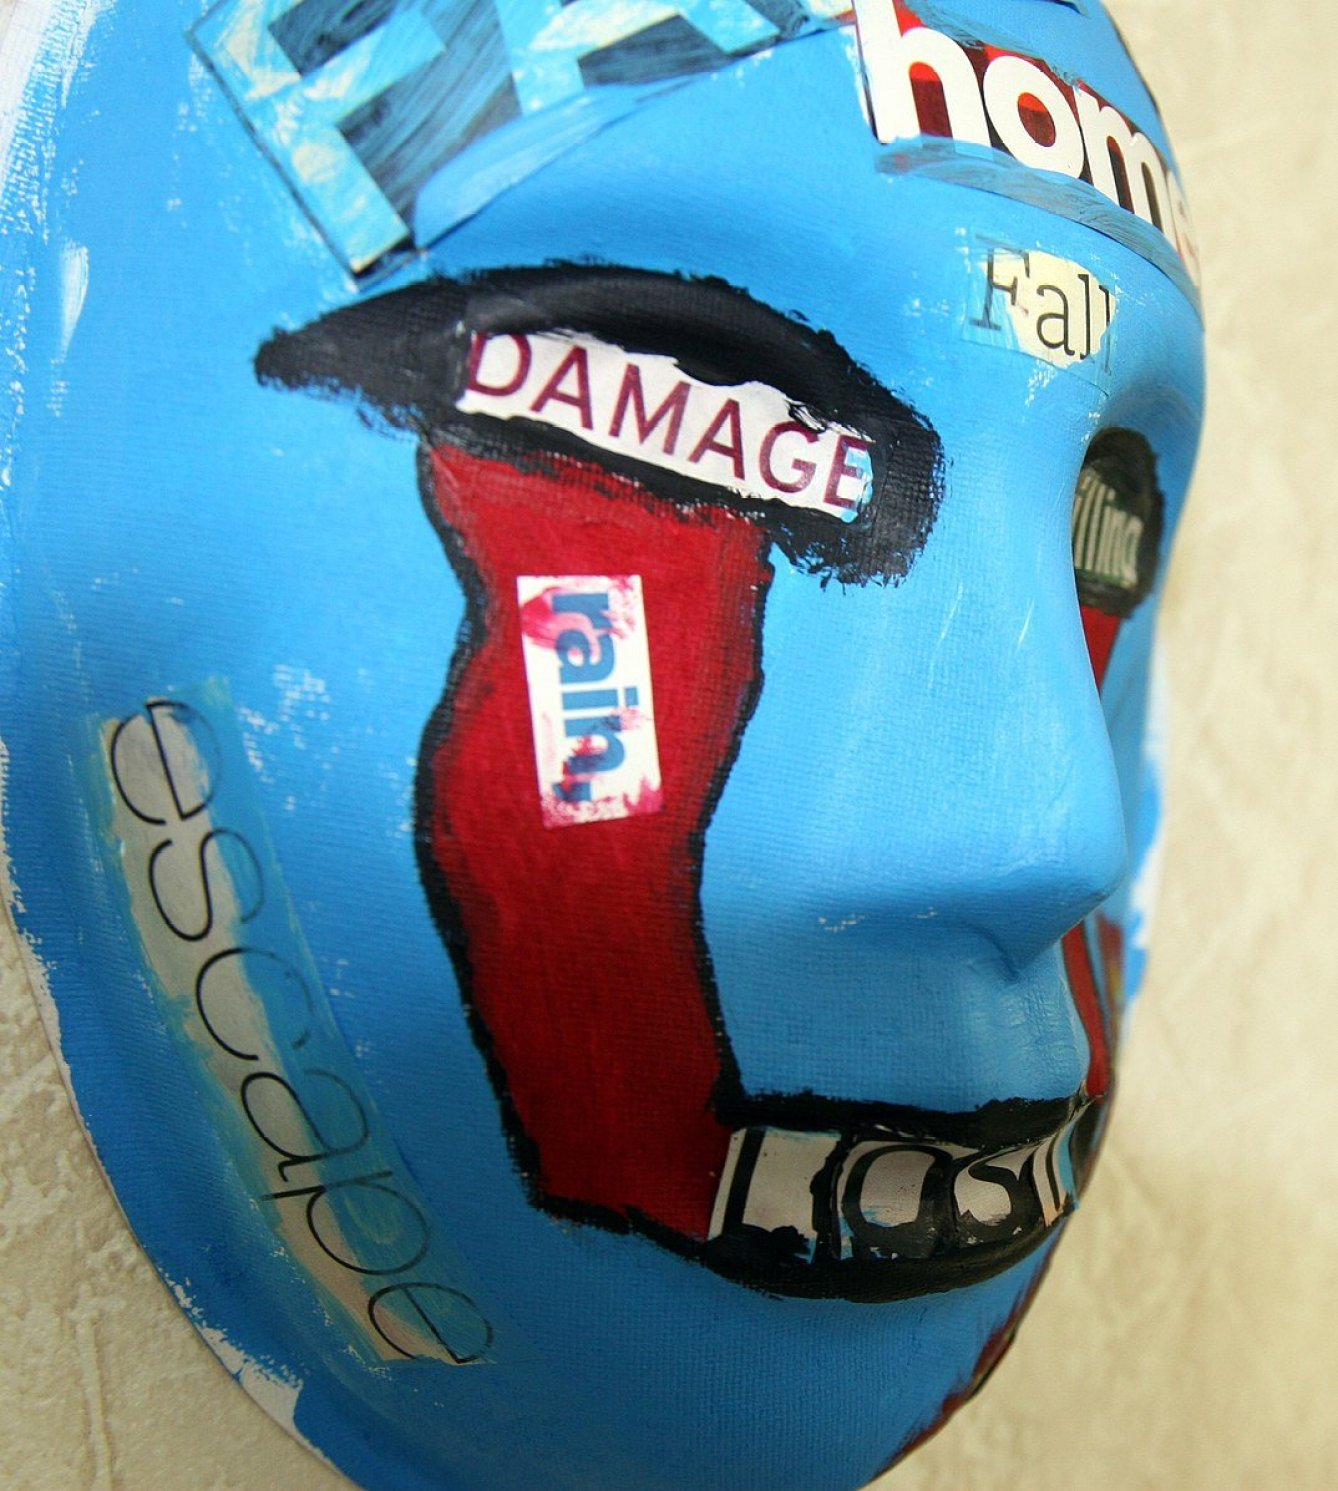 A mask painted by a U.S. Marine who attends art therapy to relieve PTSD symptoms. Image credit: English: Cpl. Andrew Johnston, Public domain, via Wikimedia Commons